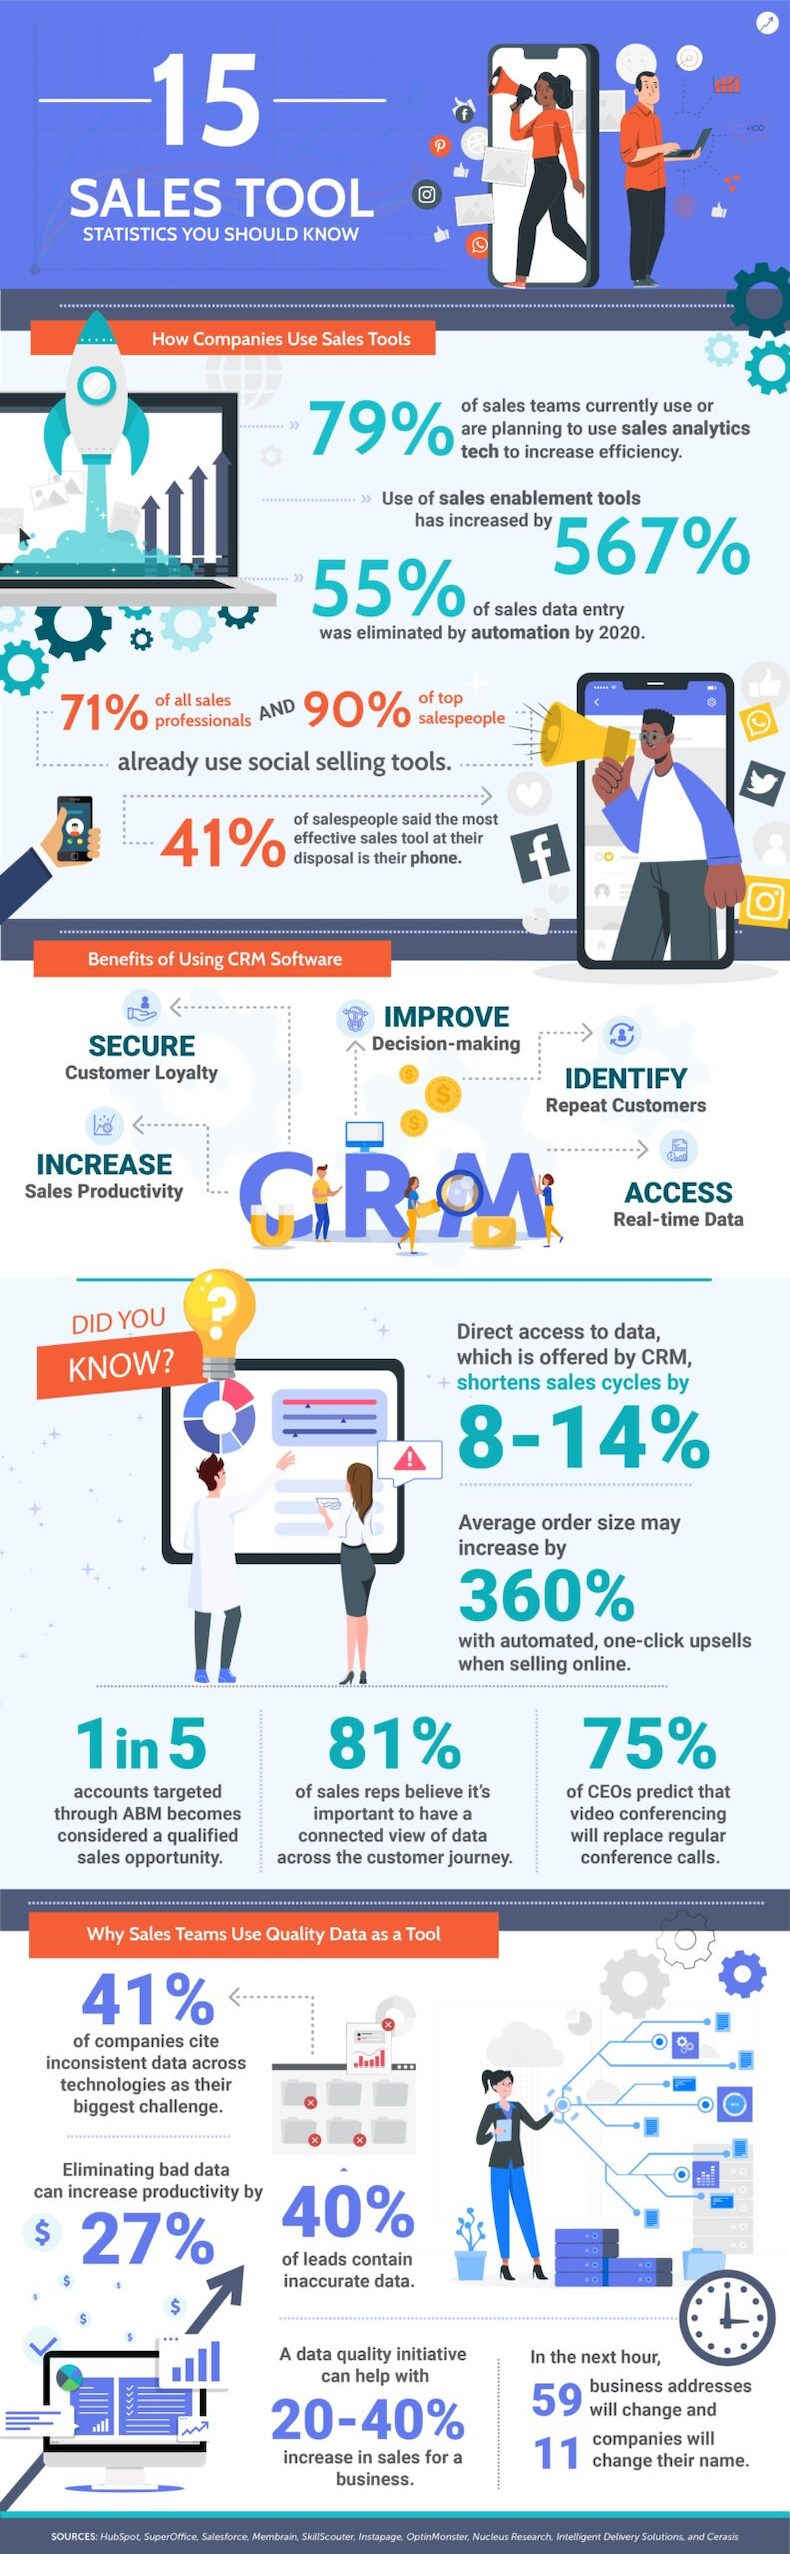 15 statistics you should know about sales tools infographic